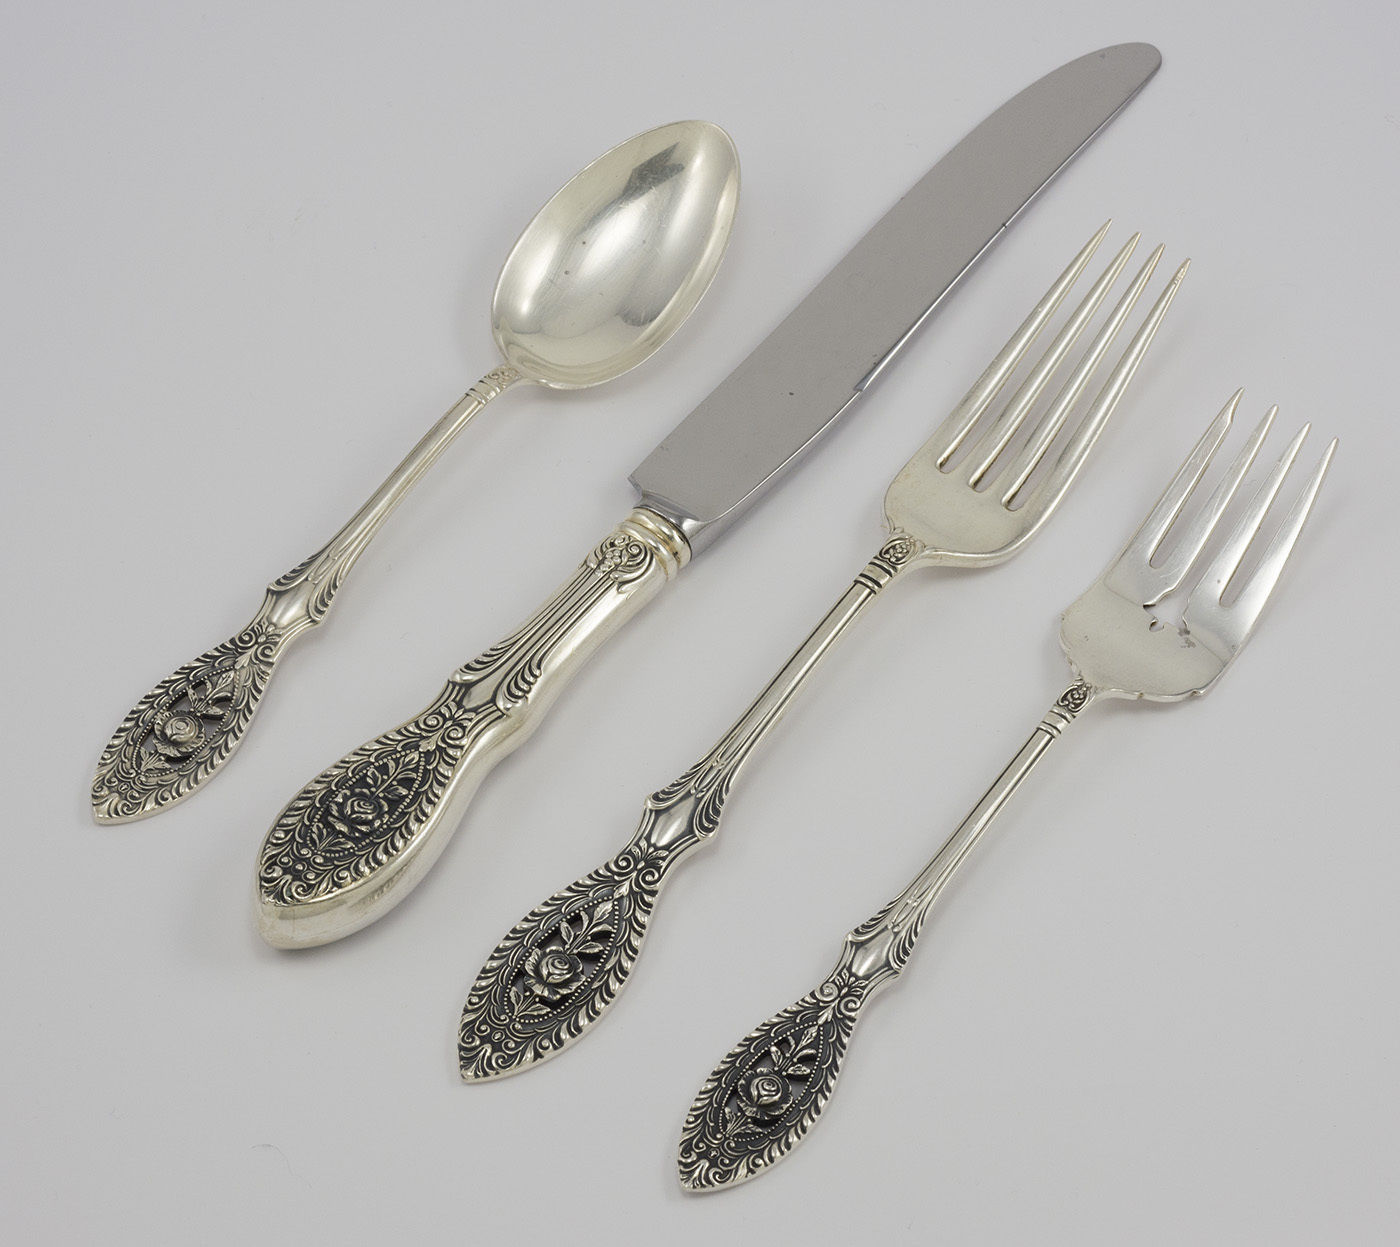 Primary image for Valenciennes by Manchester Sterling Silver Regular 4 Piece Flatware Set, No Mono